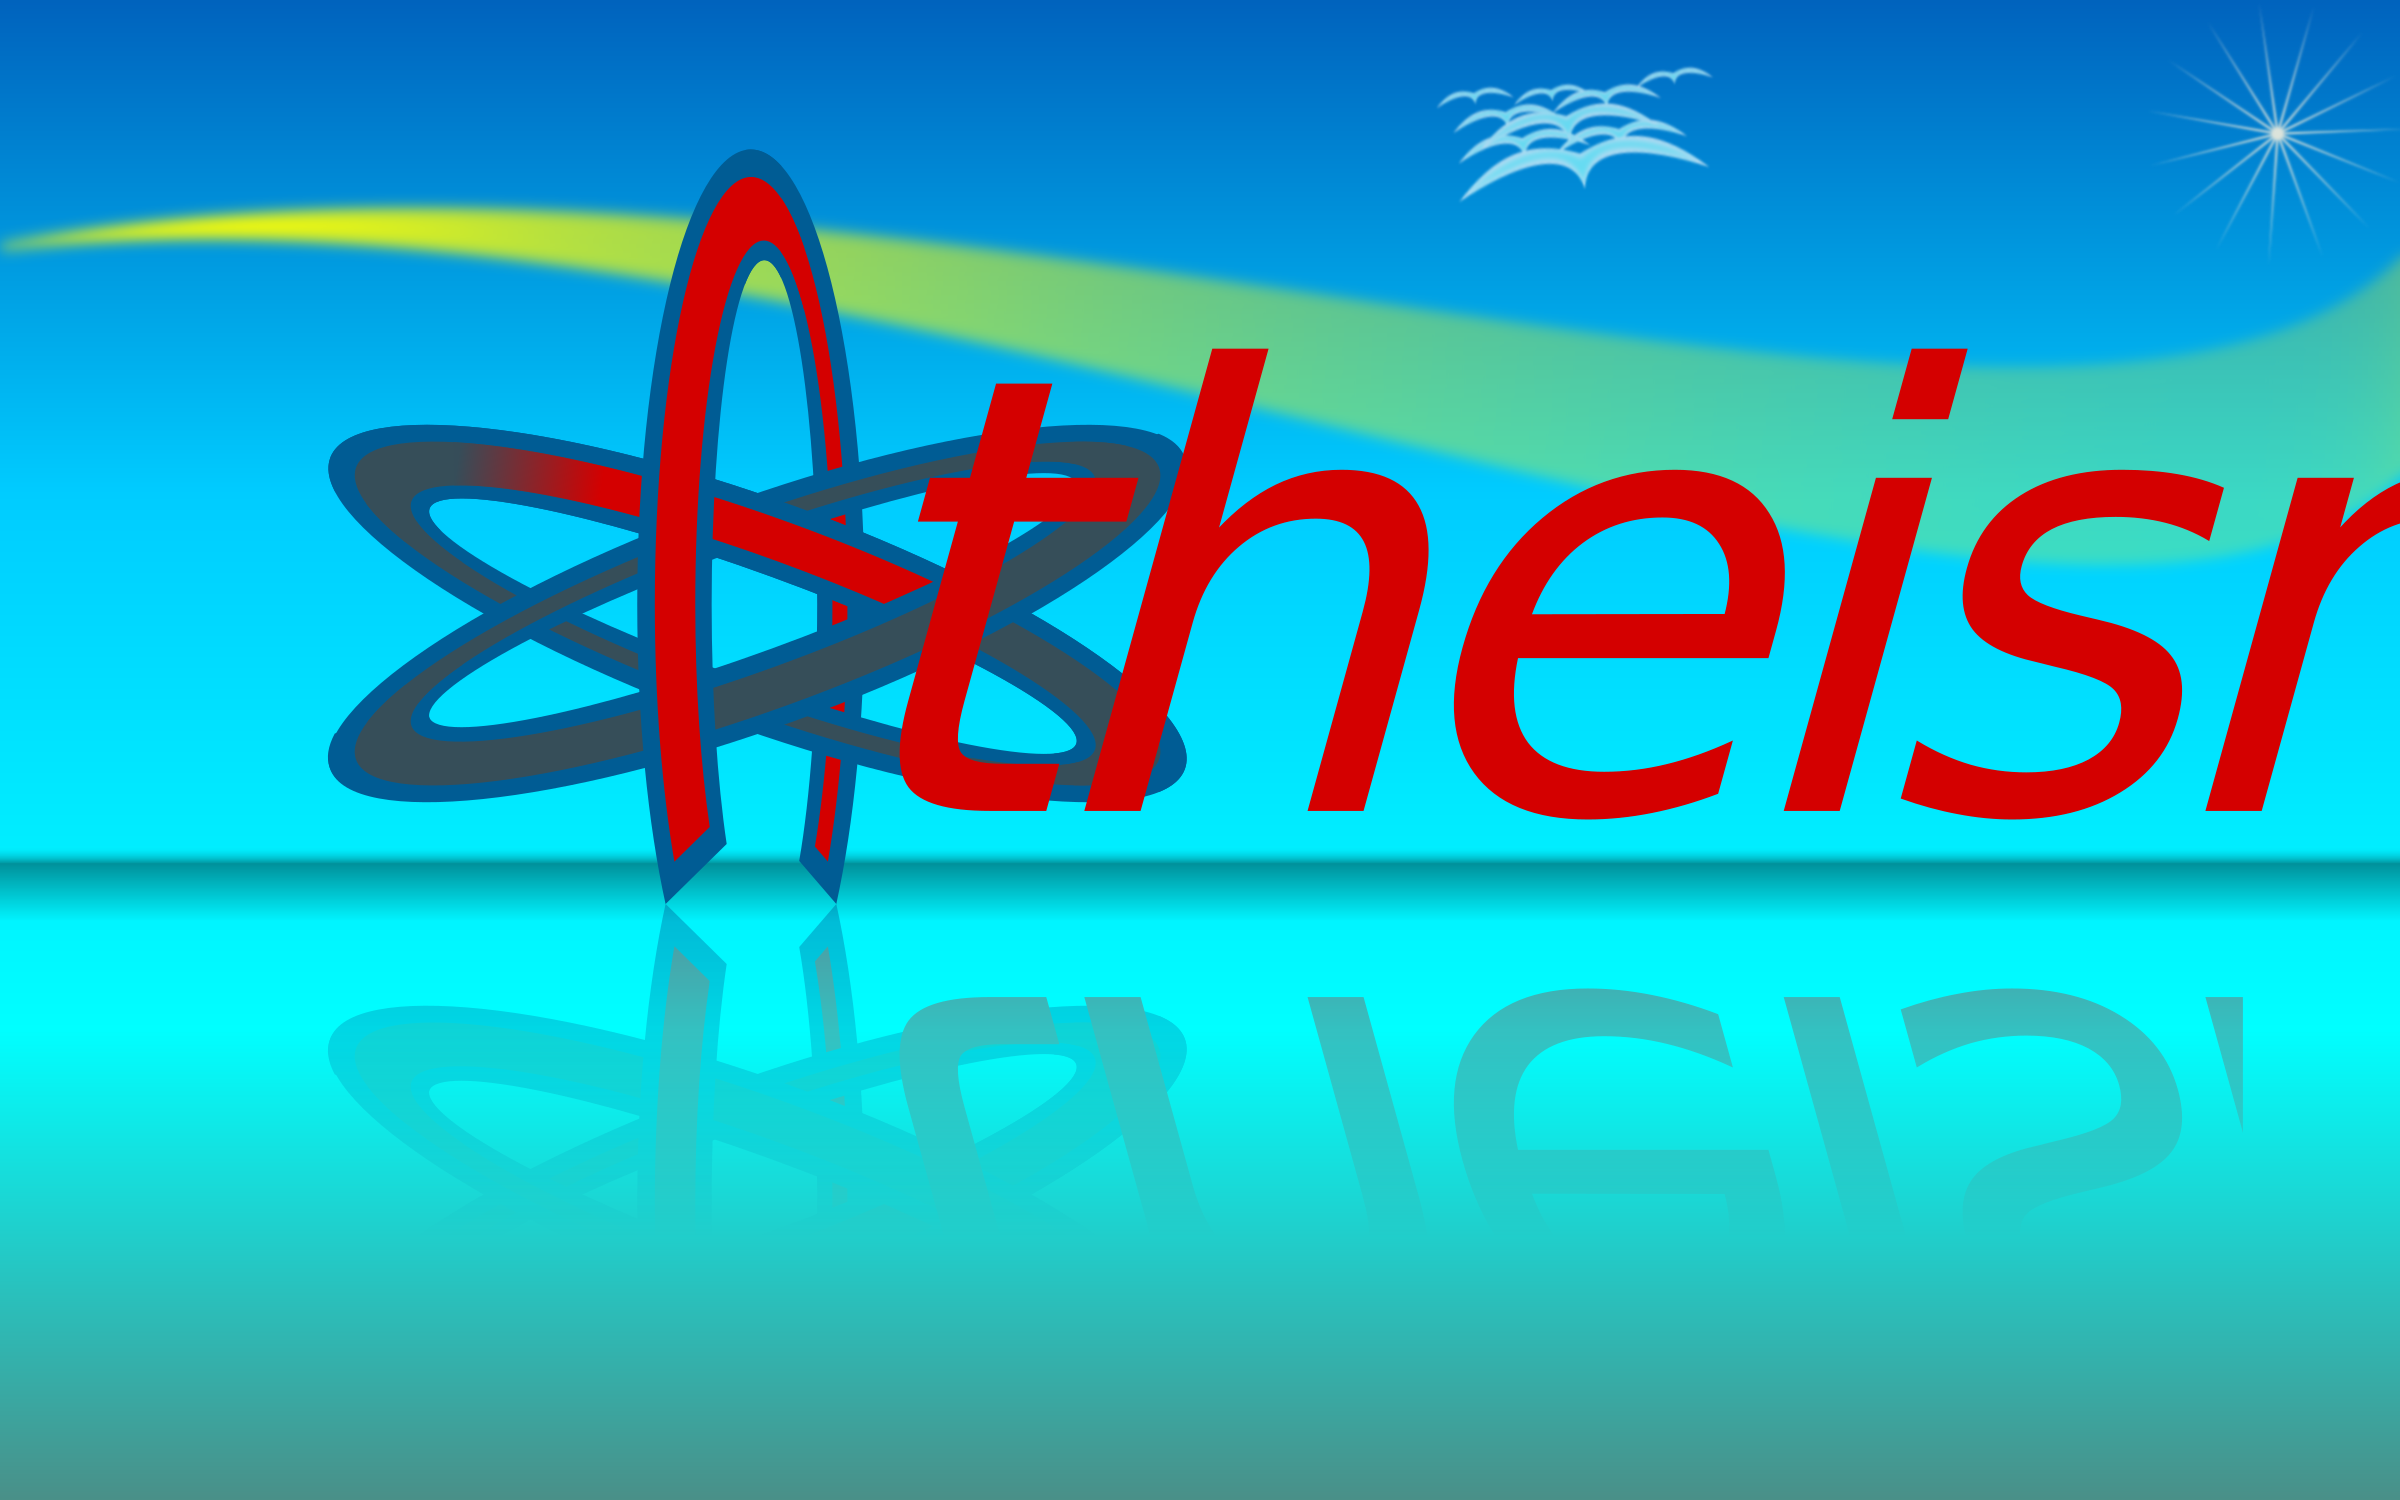 Atom Of Atheism Wallpaper 10by16 by kg